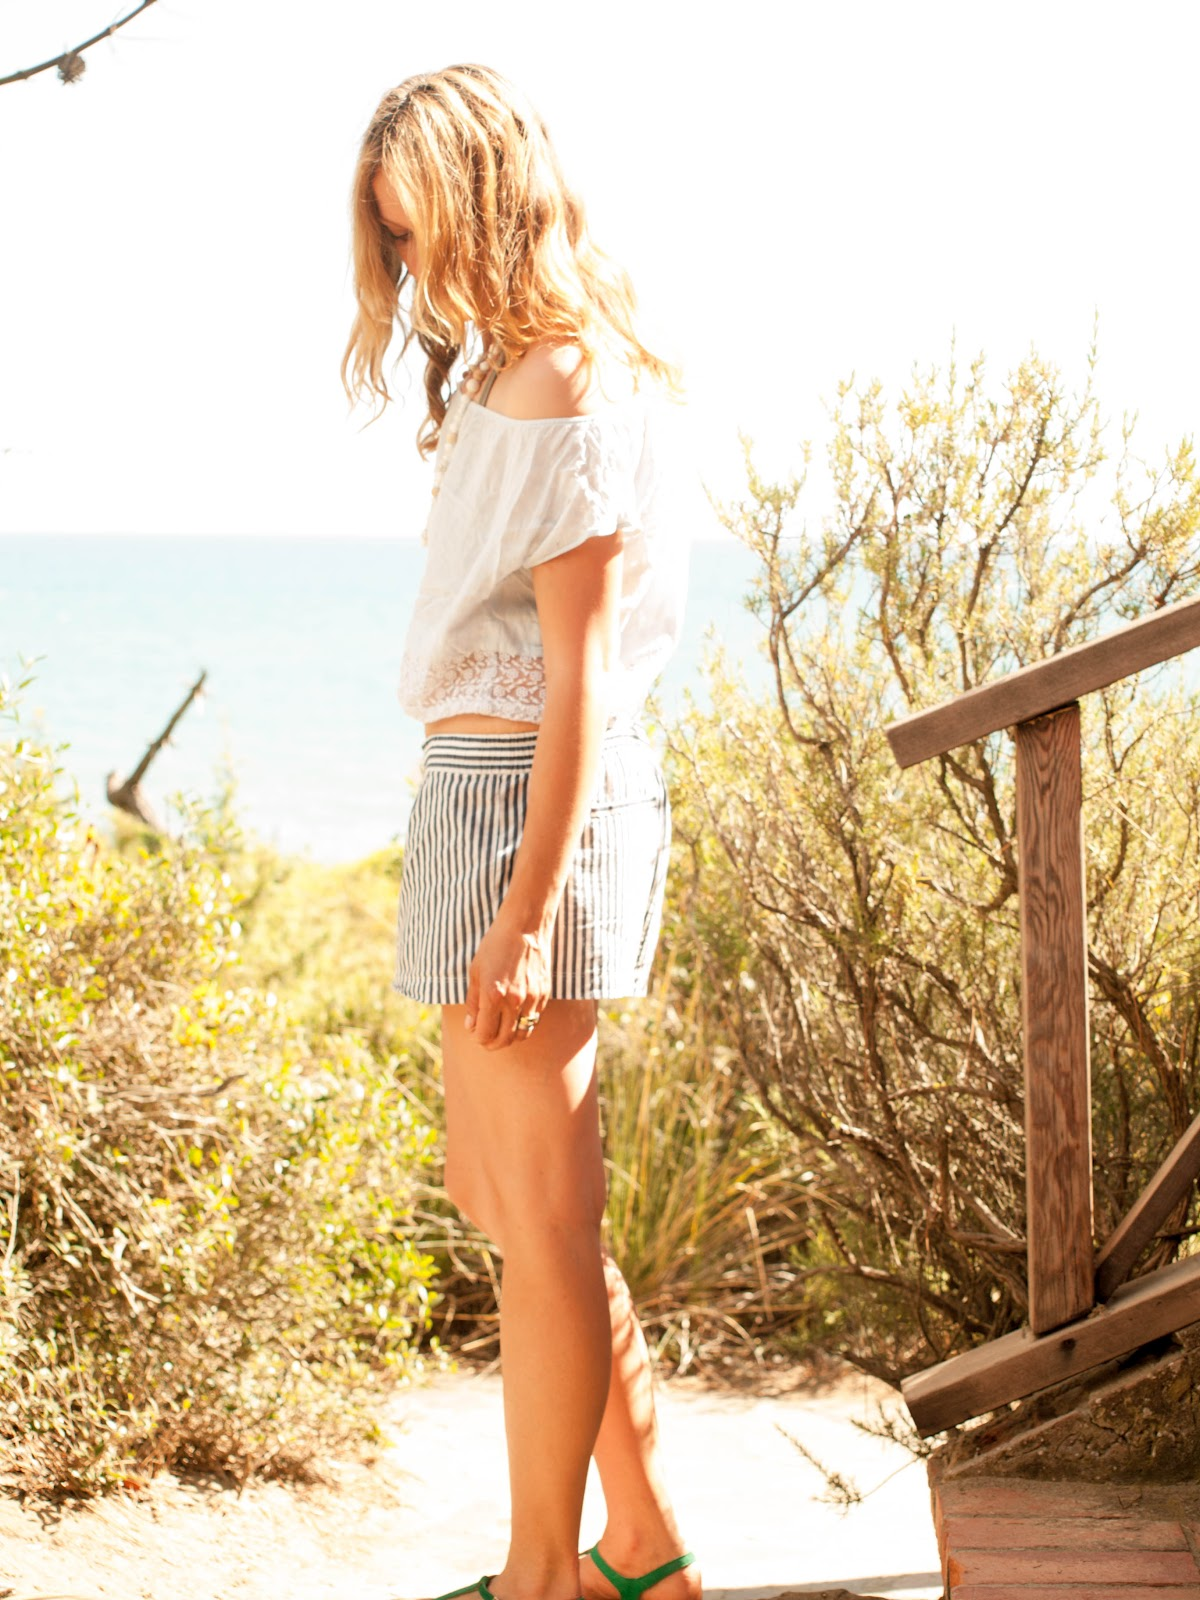 Midriff baring top, crop top, Striped shorts, Beach outfit, Anthropologie shorts